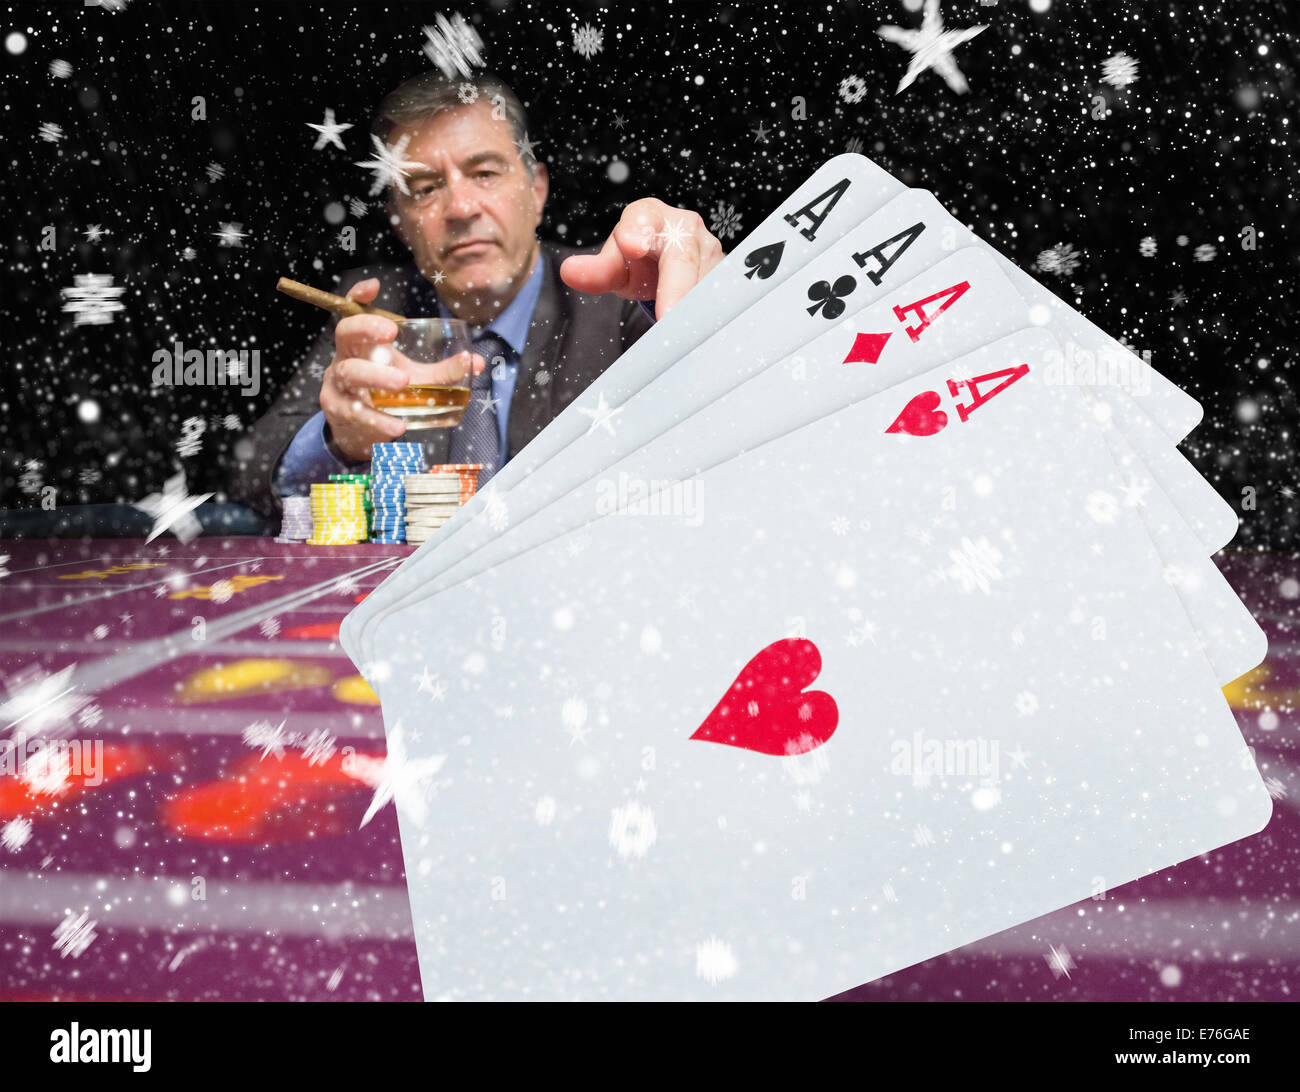 Composite image of gambler holding whiskey at poker table with digital hand of cards in foreground - Stock Image